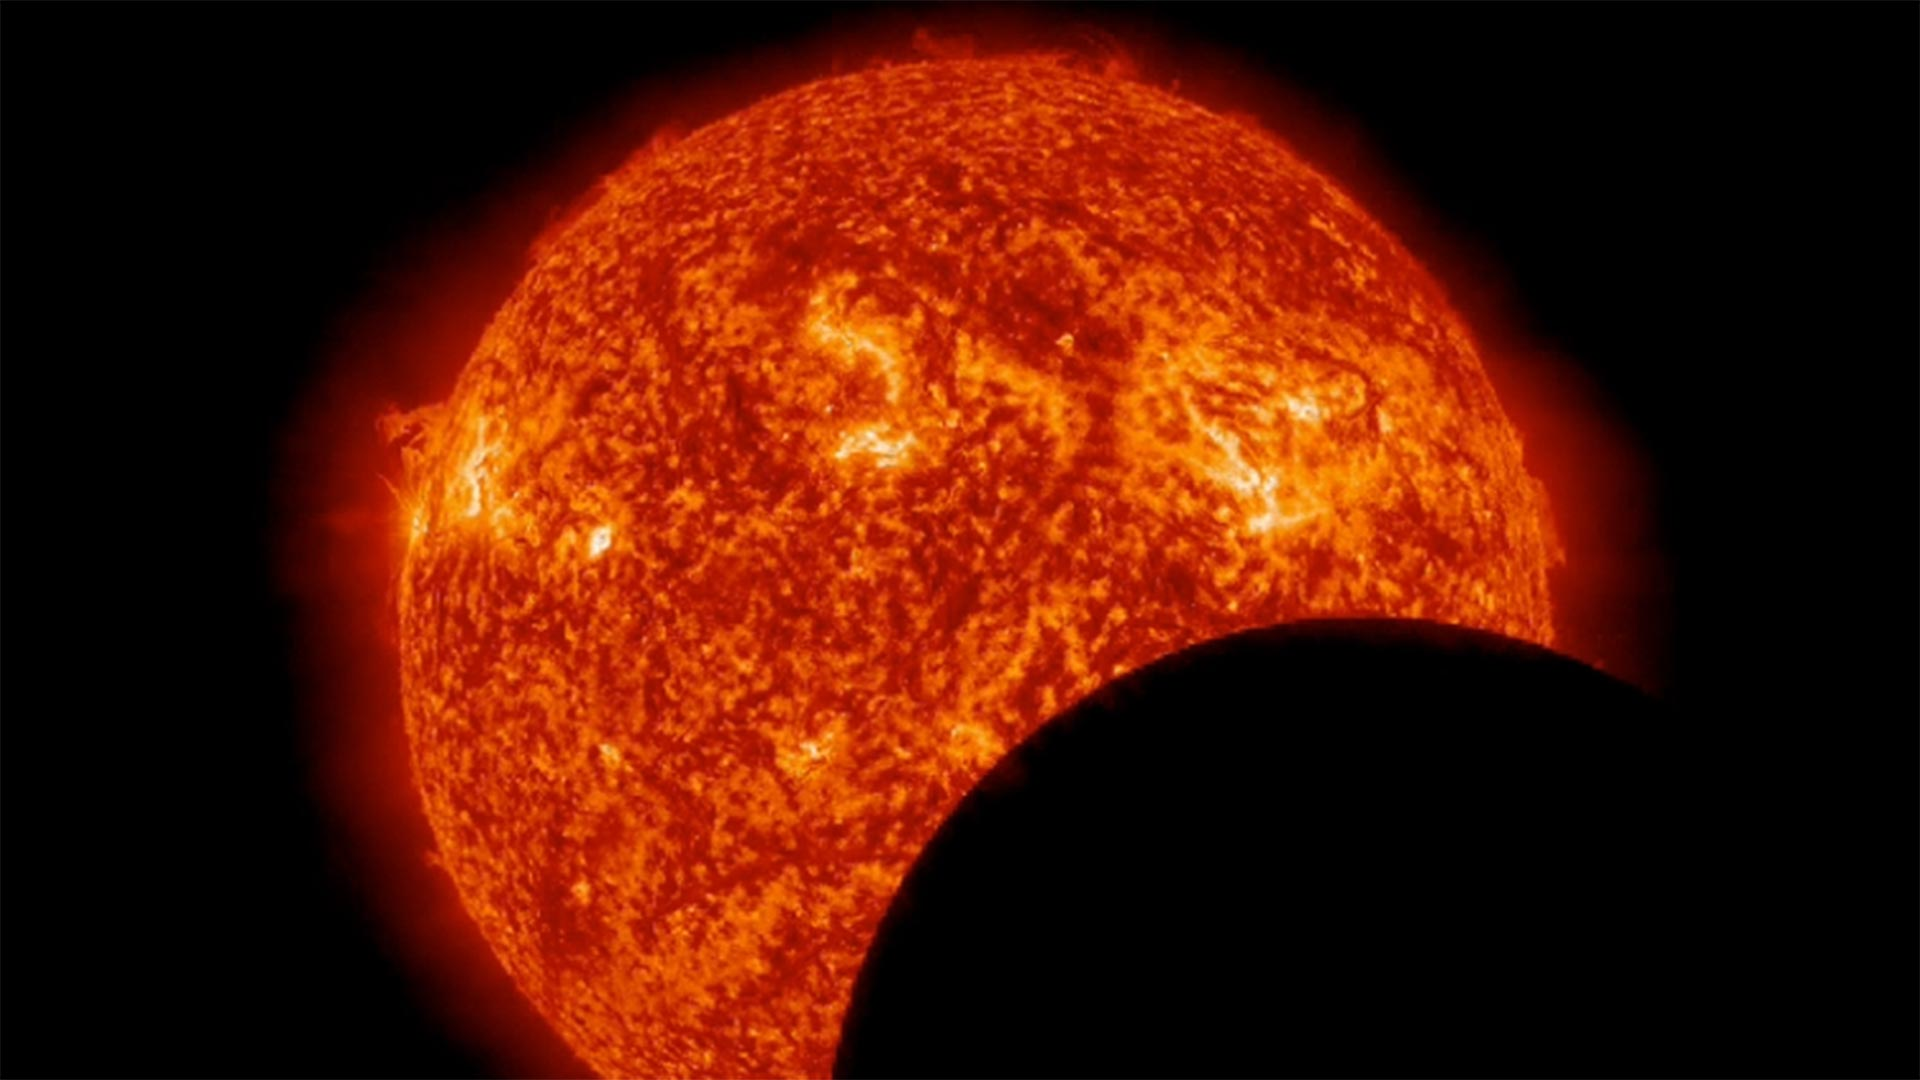 This image from NASA's Solar Dynamics Observatory on Mar. 11, 2013, at 8:00 a.m. EDT, shows the moon crossing in front of the sun.